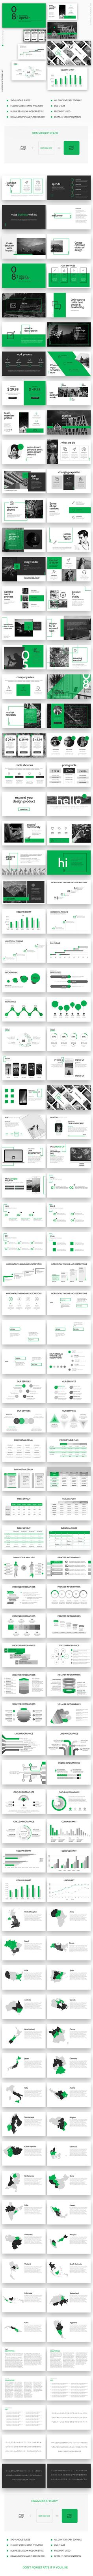 Green Card Business Powerpoint Template — Powerpoint PPTX #mockups #apps • Available here ➝ https://graphicriver.net/item/green-card-business-powerpoint-template/20929122?ref=pxcr